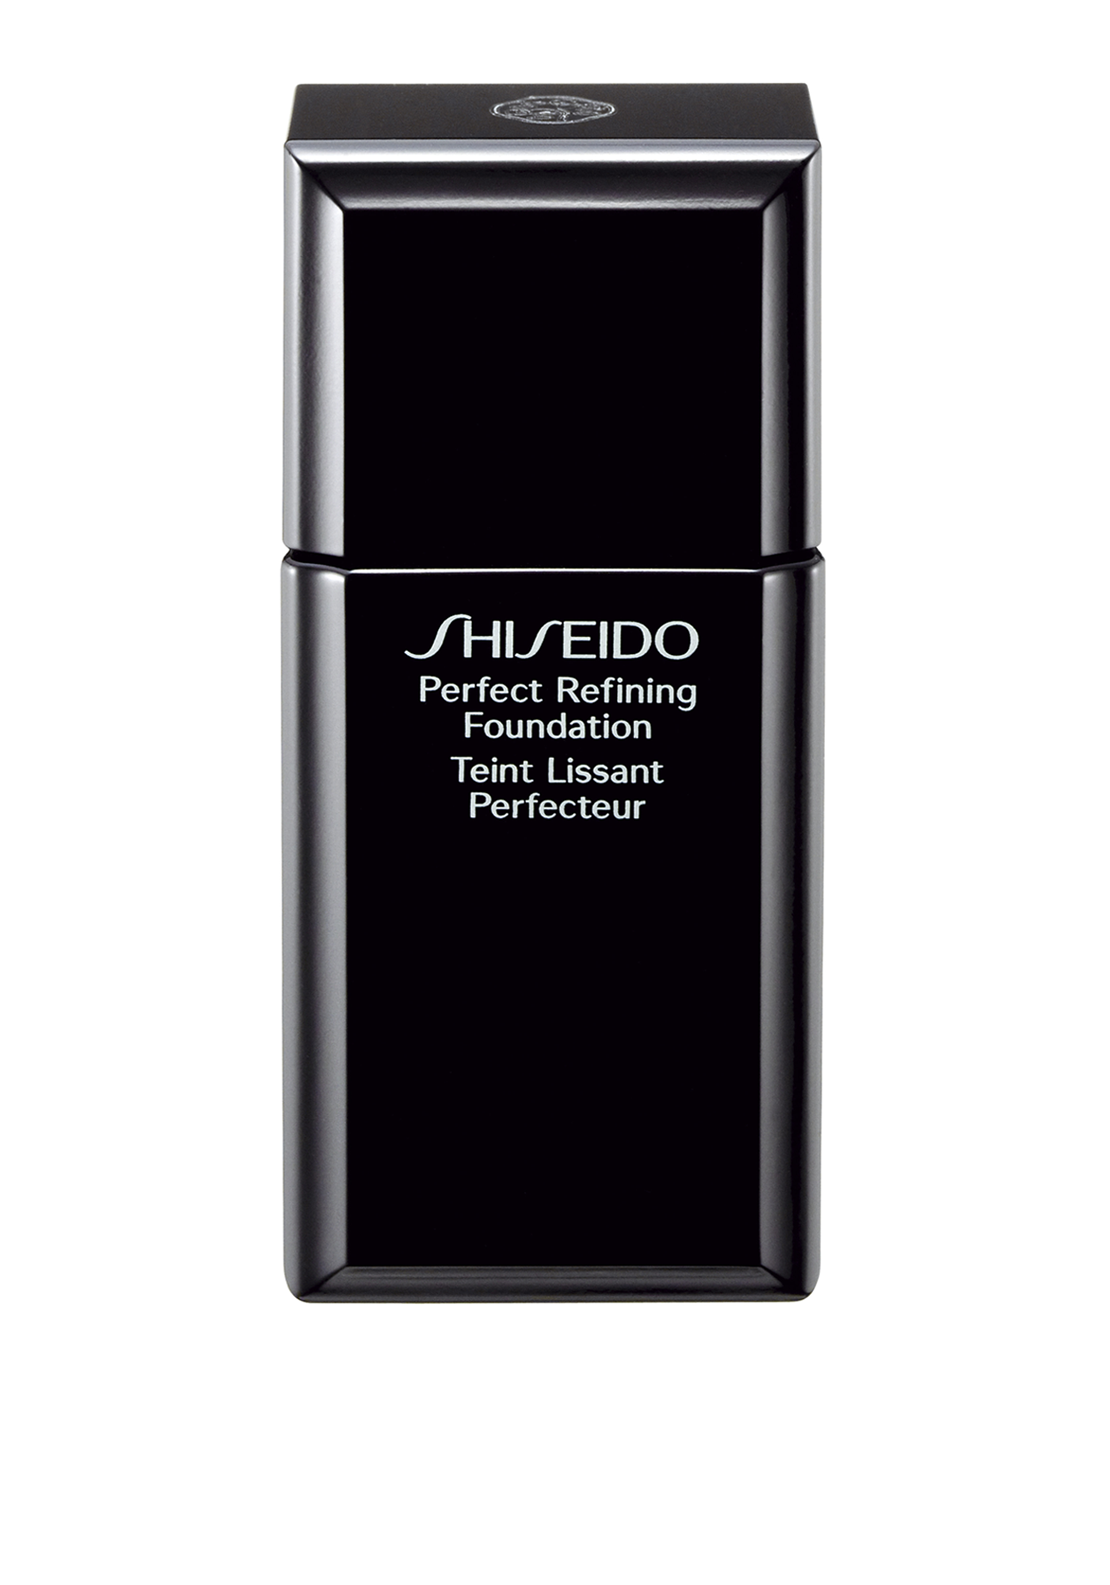 Shiseido Perfect Refining Foundation with SPF15, Natural Fair Beige B40